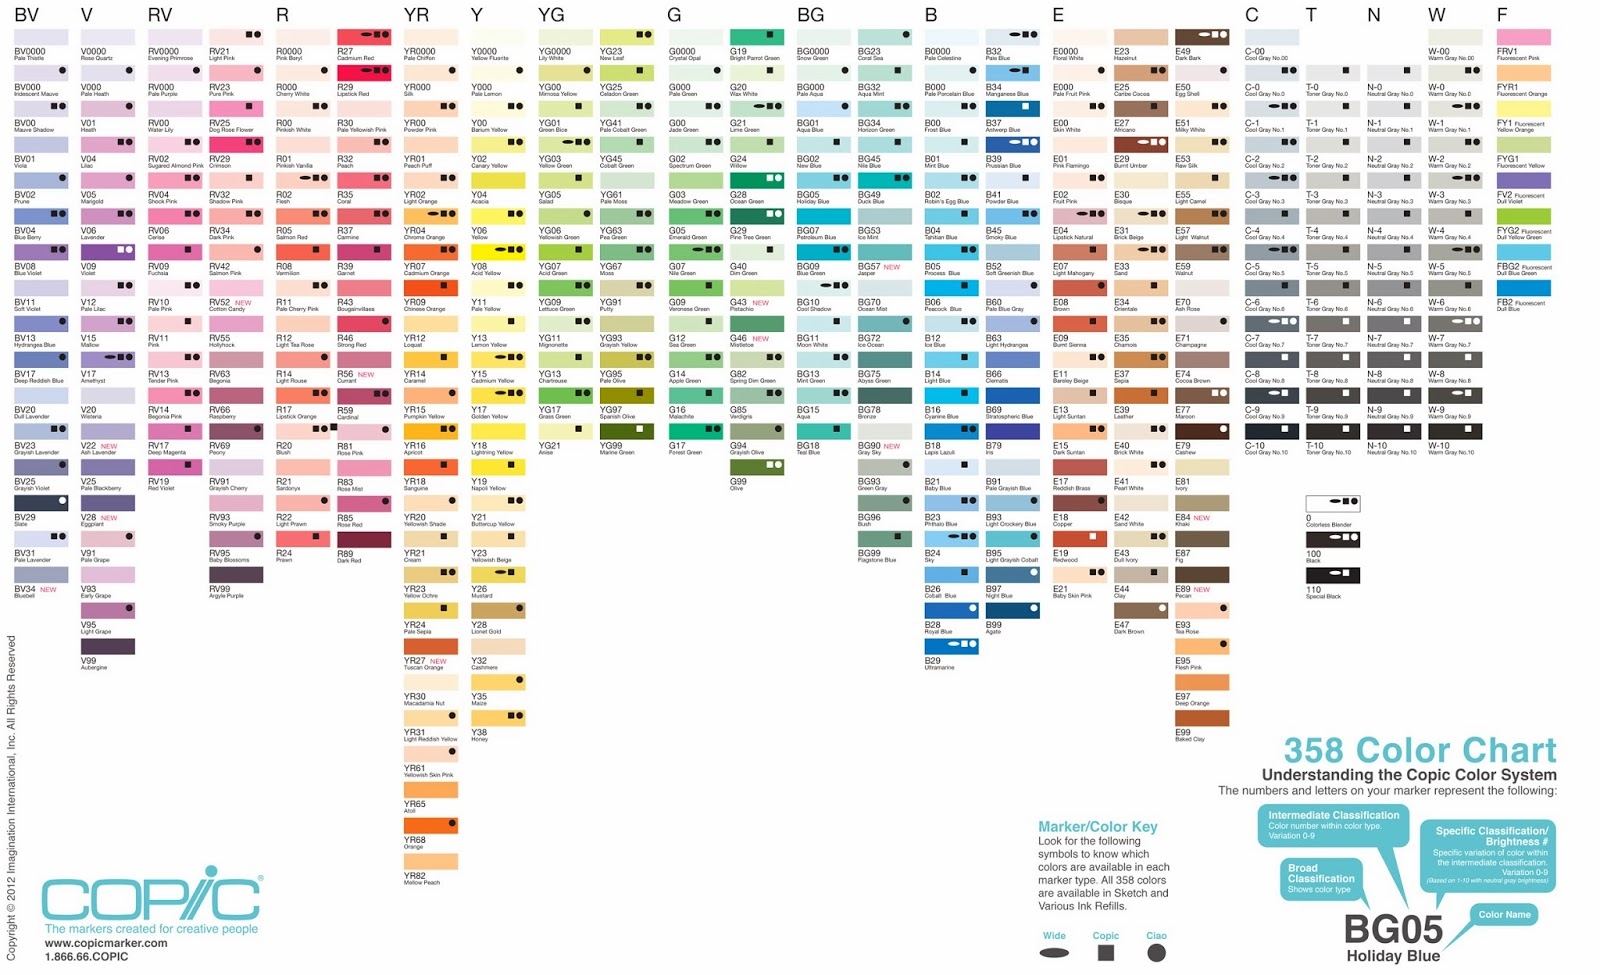 Wonderbling : The Copic color chart / Le nuancier Copic